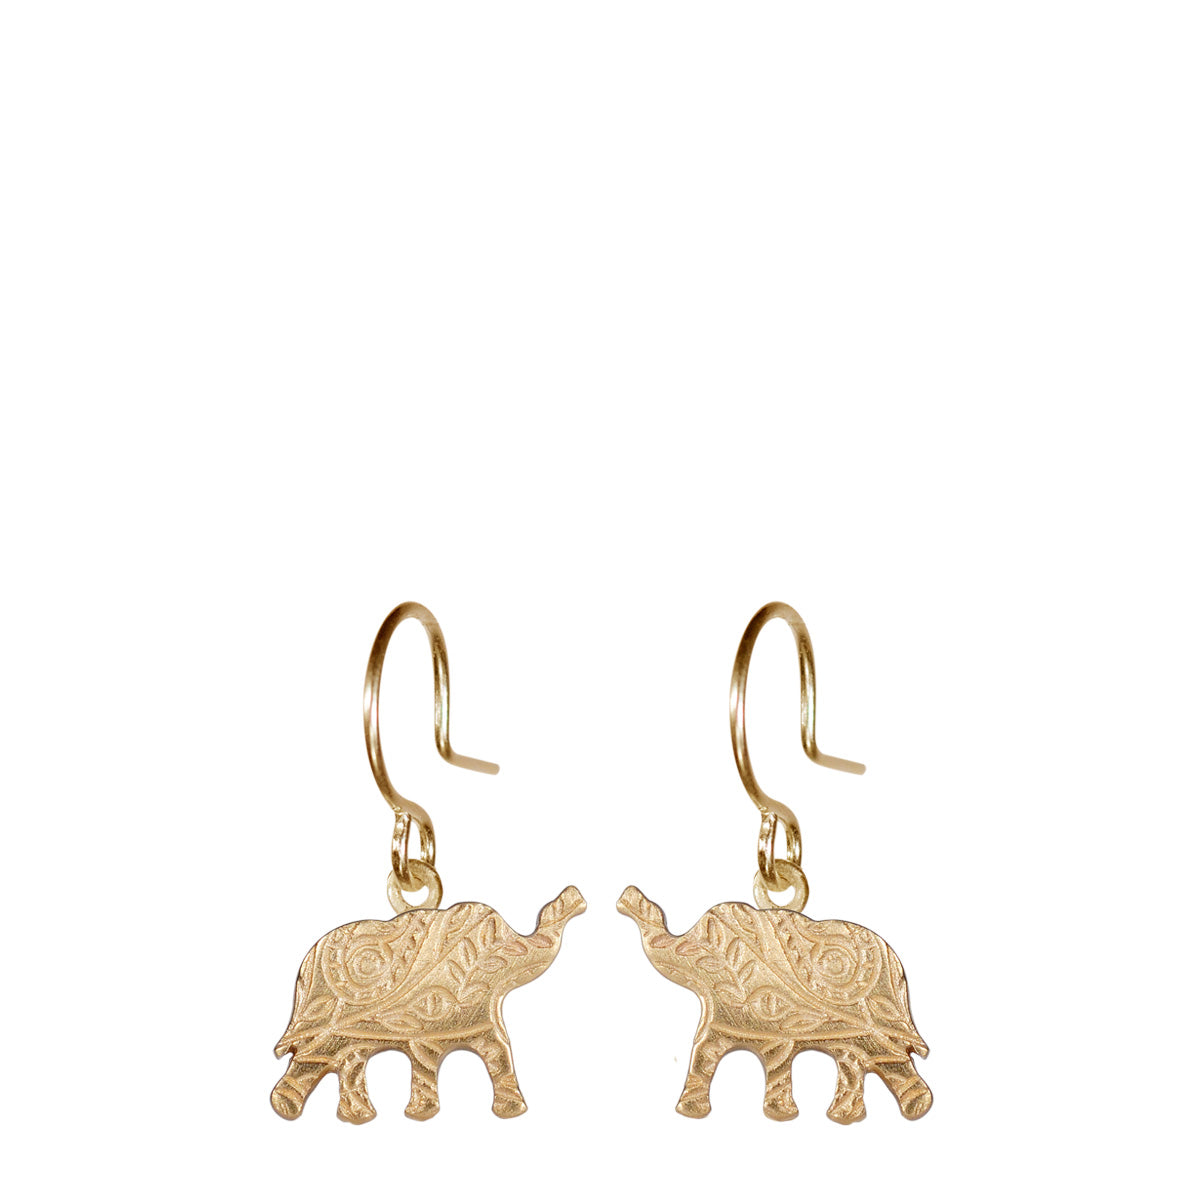 10K Gold Small Paisley Elephant Earrings